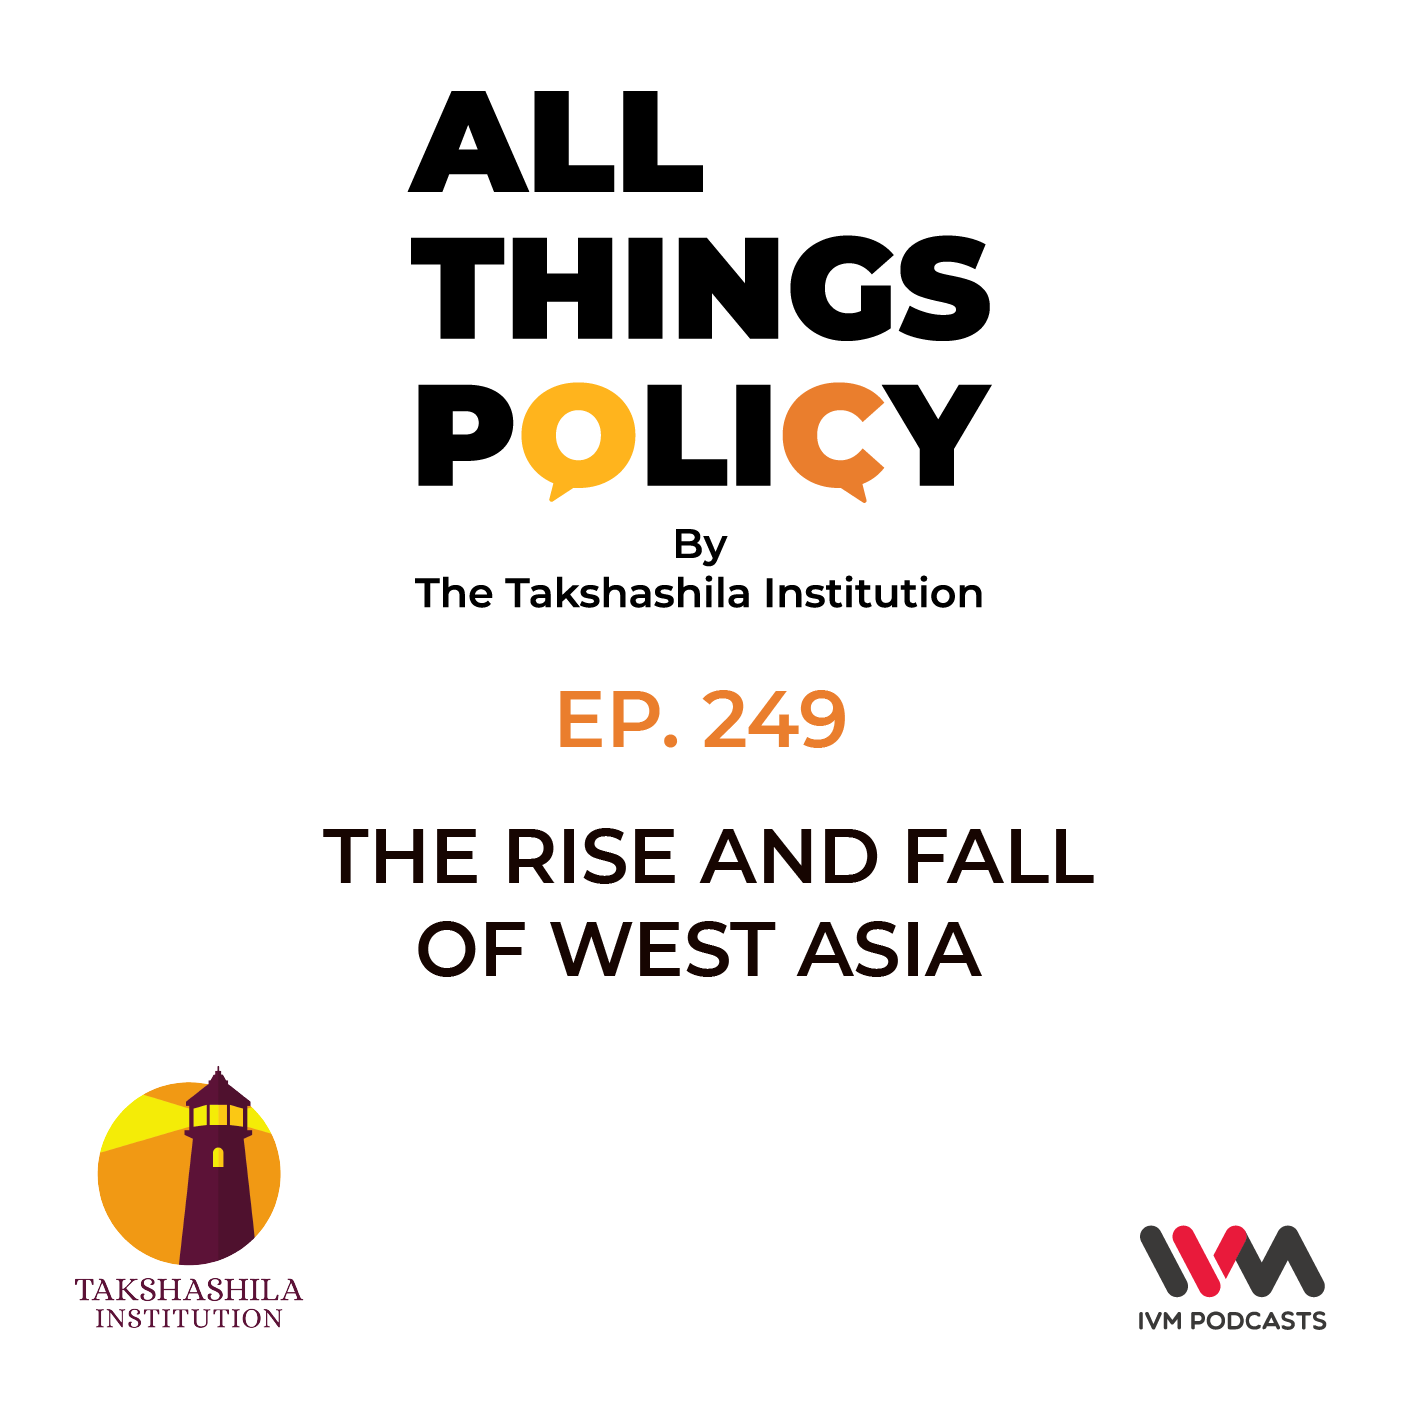 Ep. 249: The Rise and Fall of West Asia